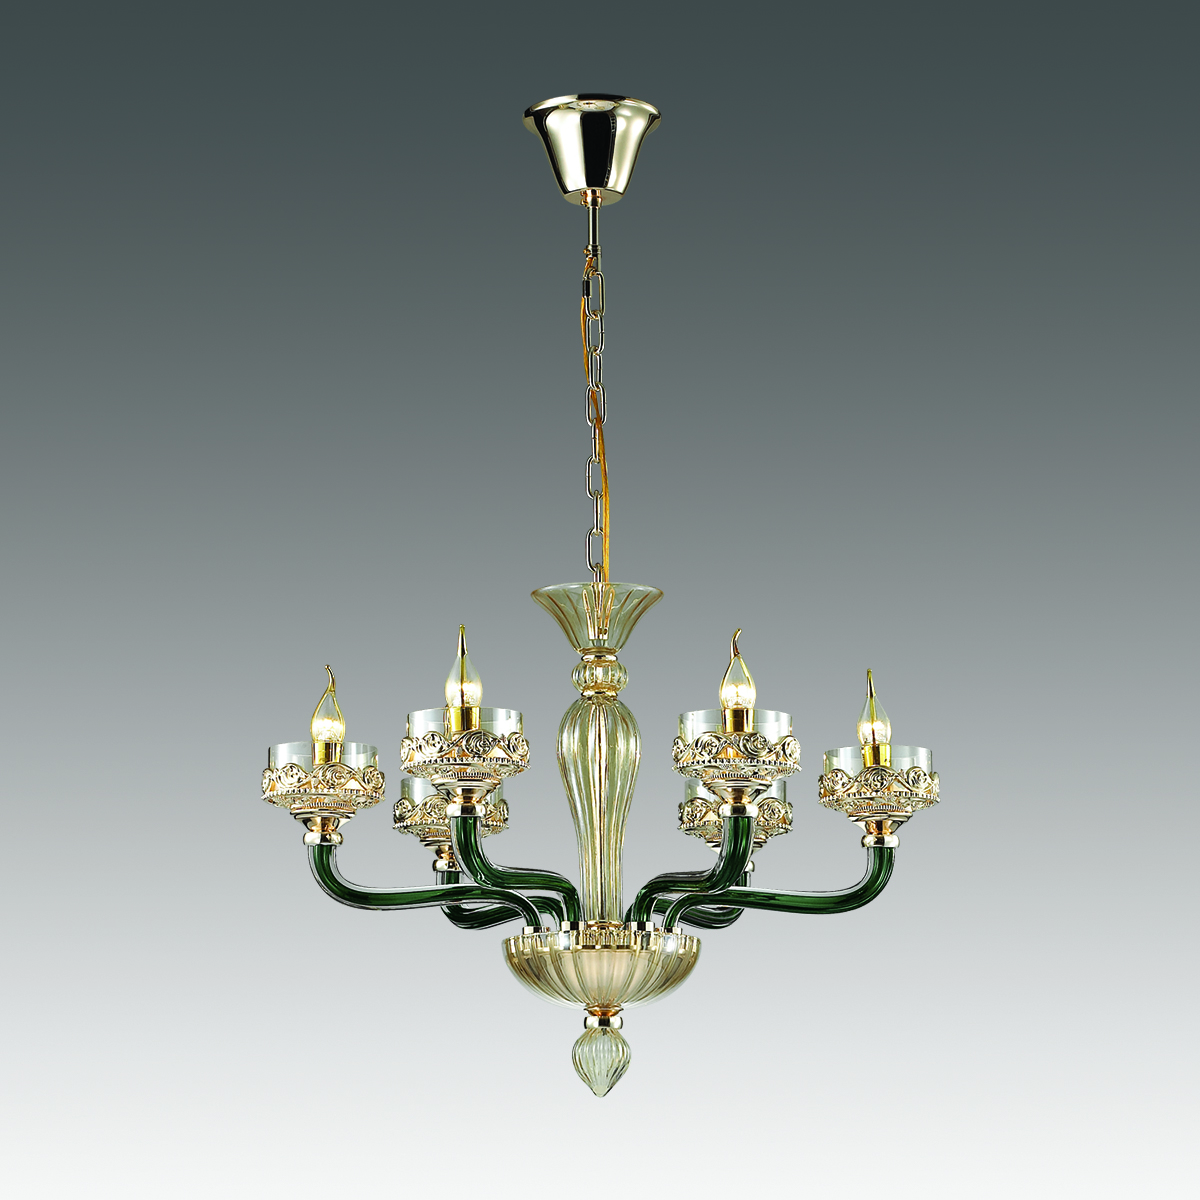 Люстра ODEON LIGHT арт. 4001/6